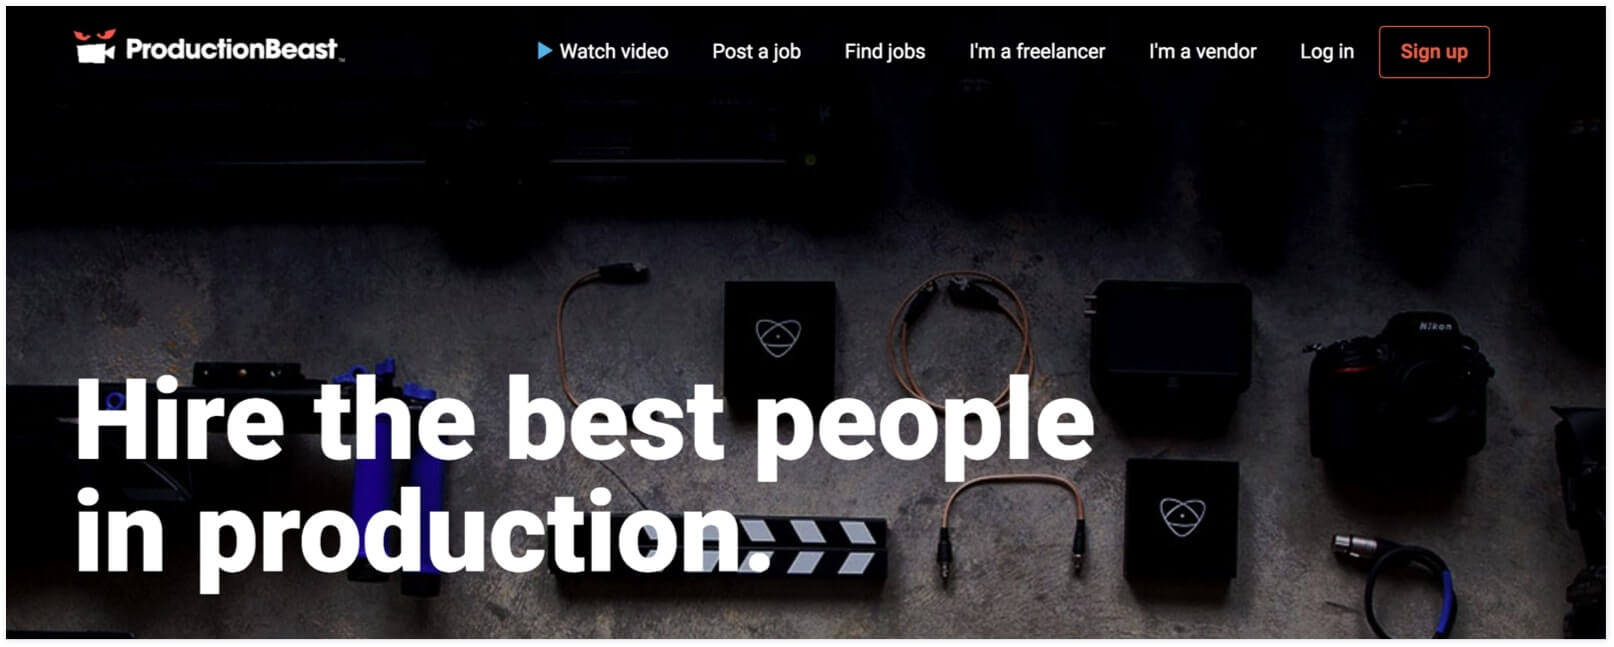 Best Filmmaking Software and Tools - Production beast - StudioBinder